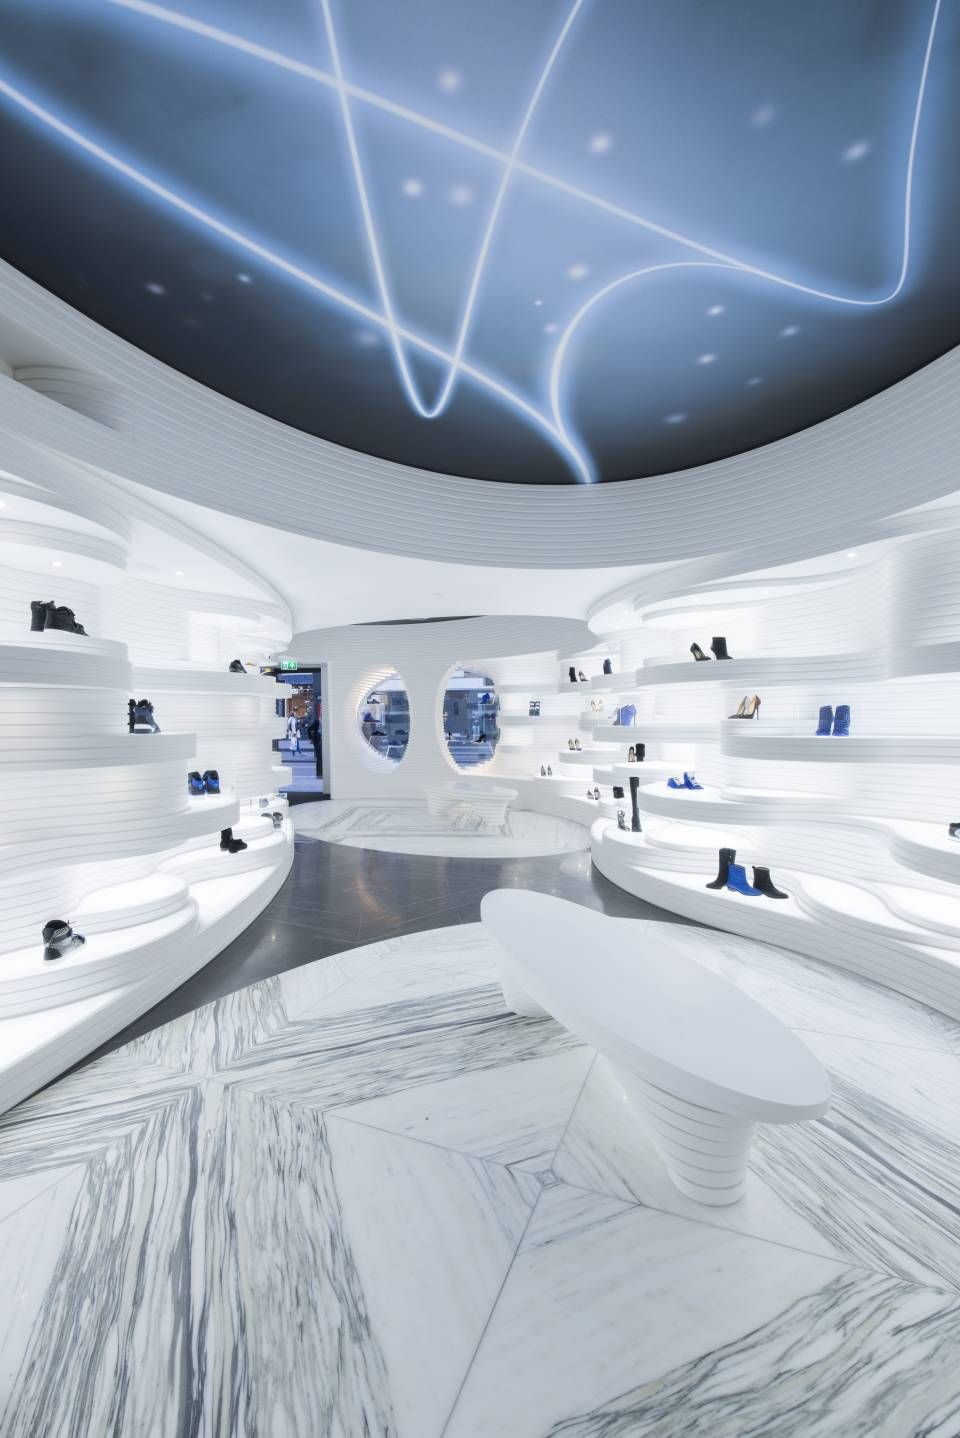 Charmant Shoes Store In Amsterdam , Shoes Store Shoebaloo Koningsplein With A  Futuristic Atmosphere In Amsterdam, By MVSA Architects. Via Fubiz U0026nbsp;